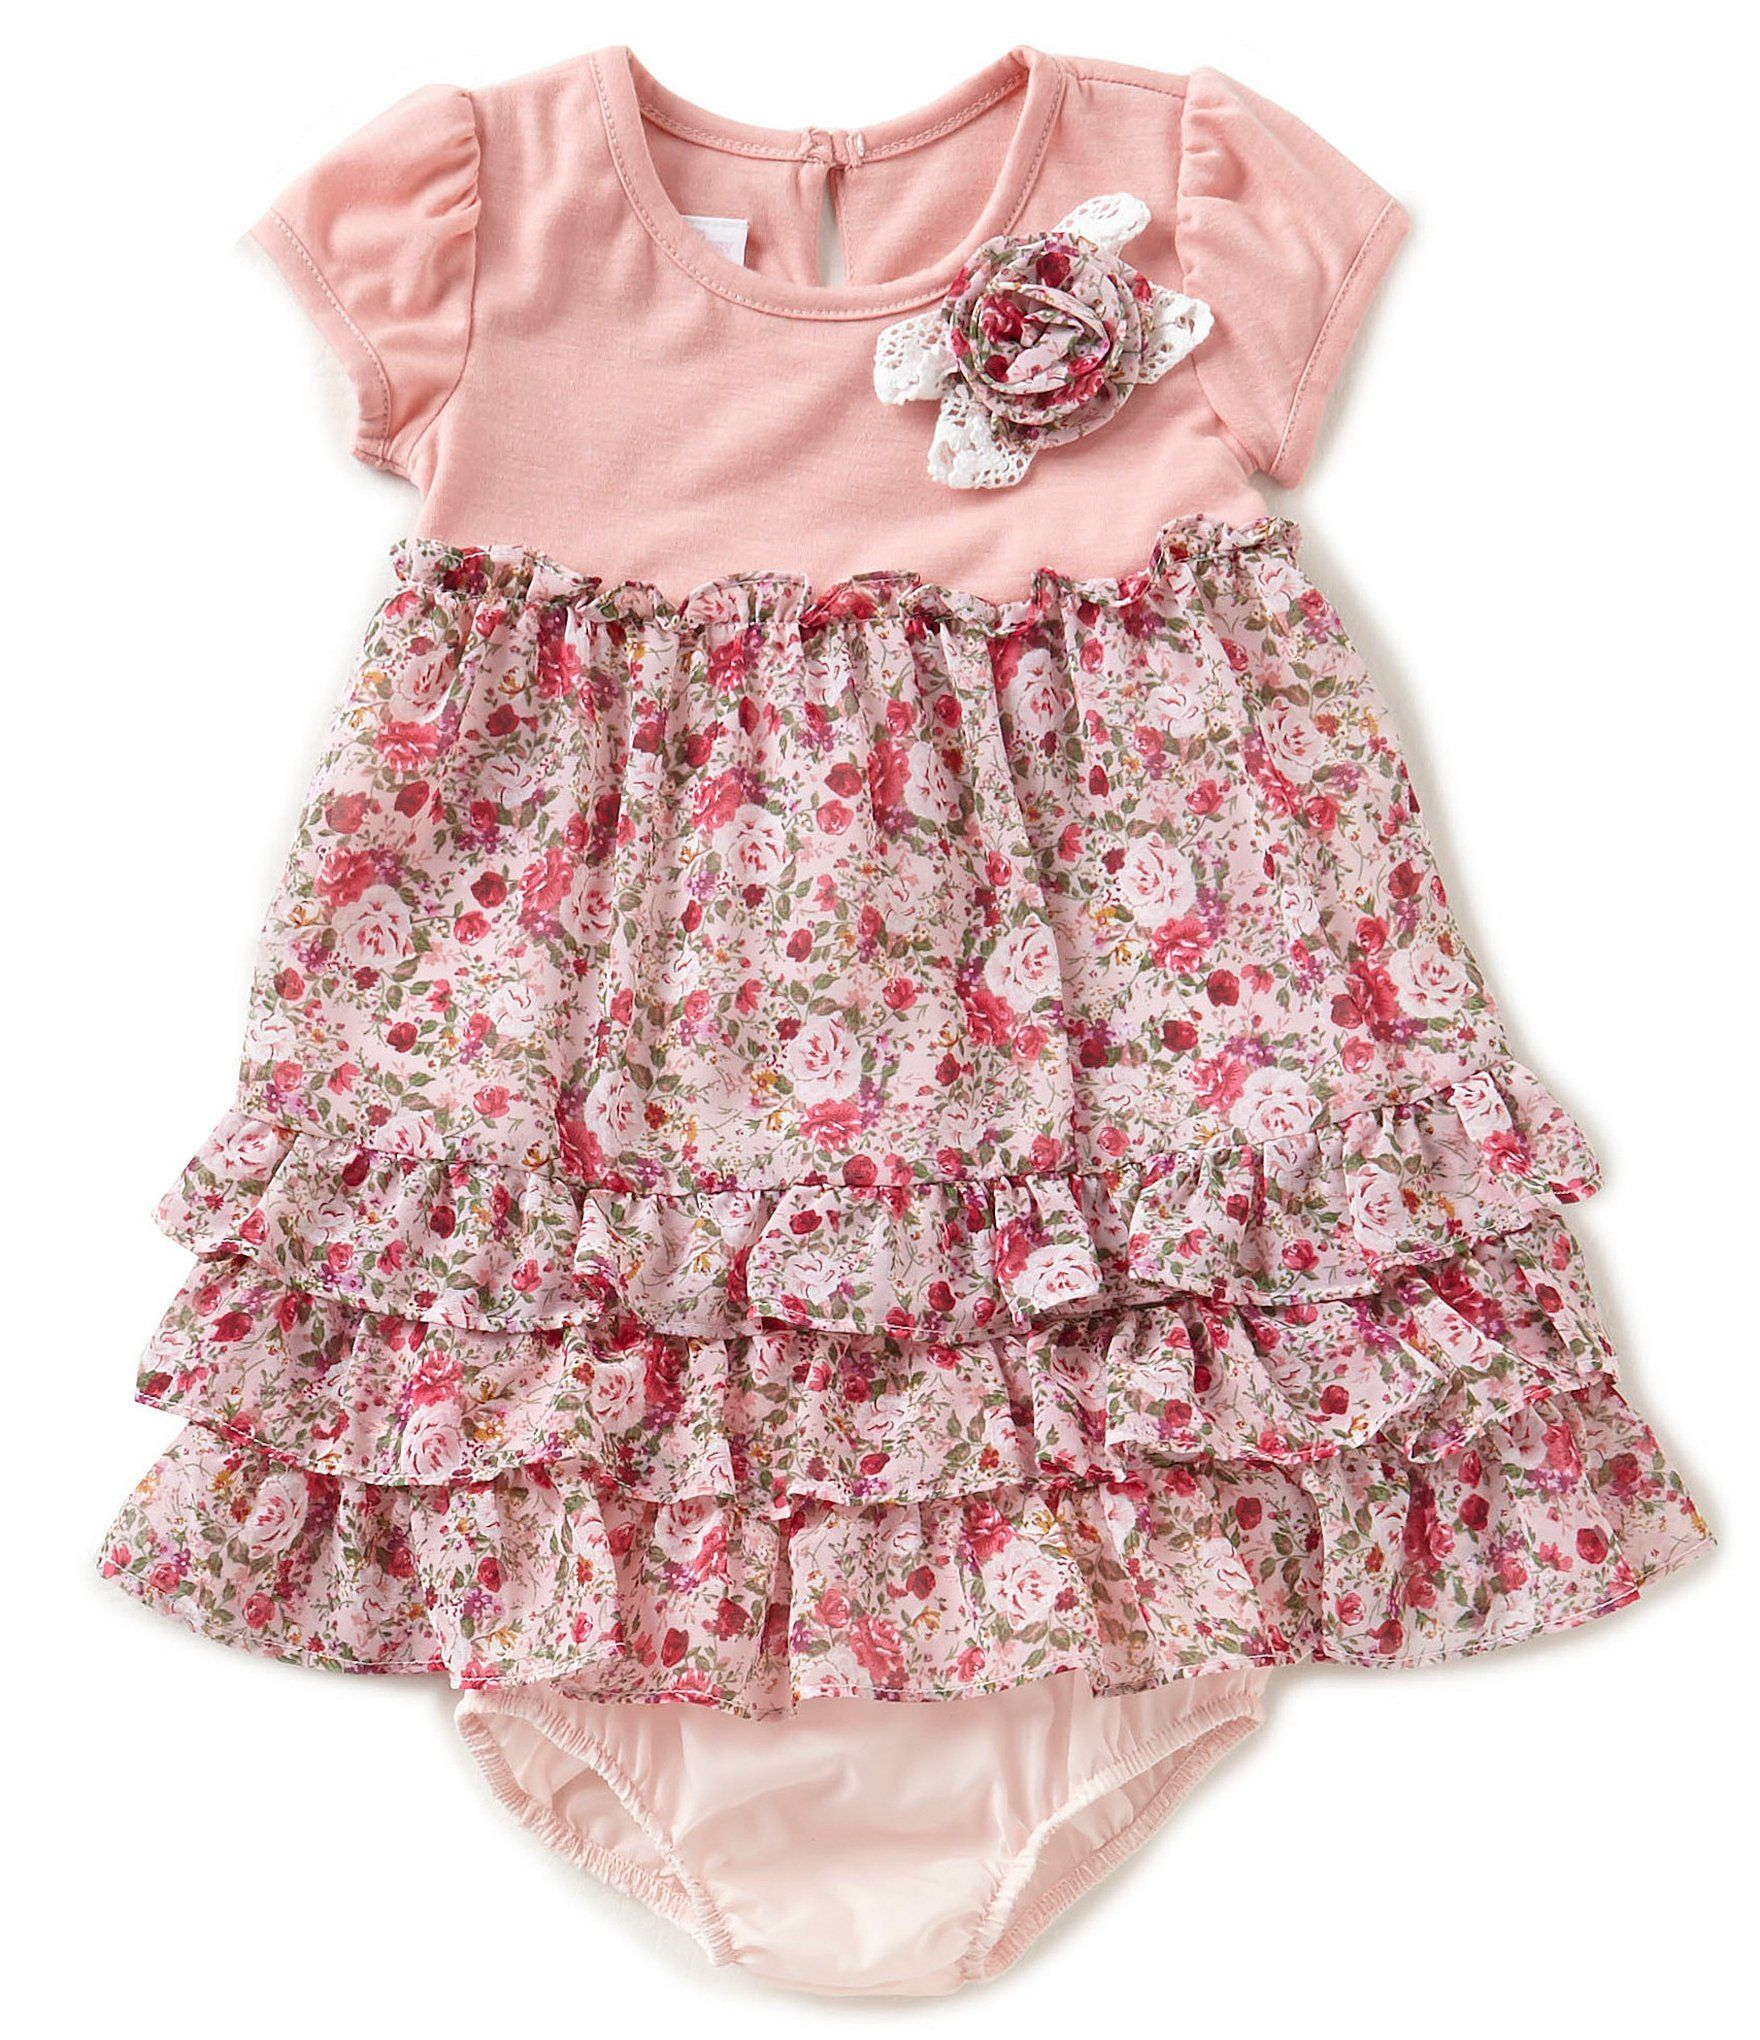 Shop for Bonnie Baby Baby Girls 12 24 Months Knit To Chiffon Floral